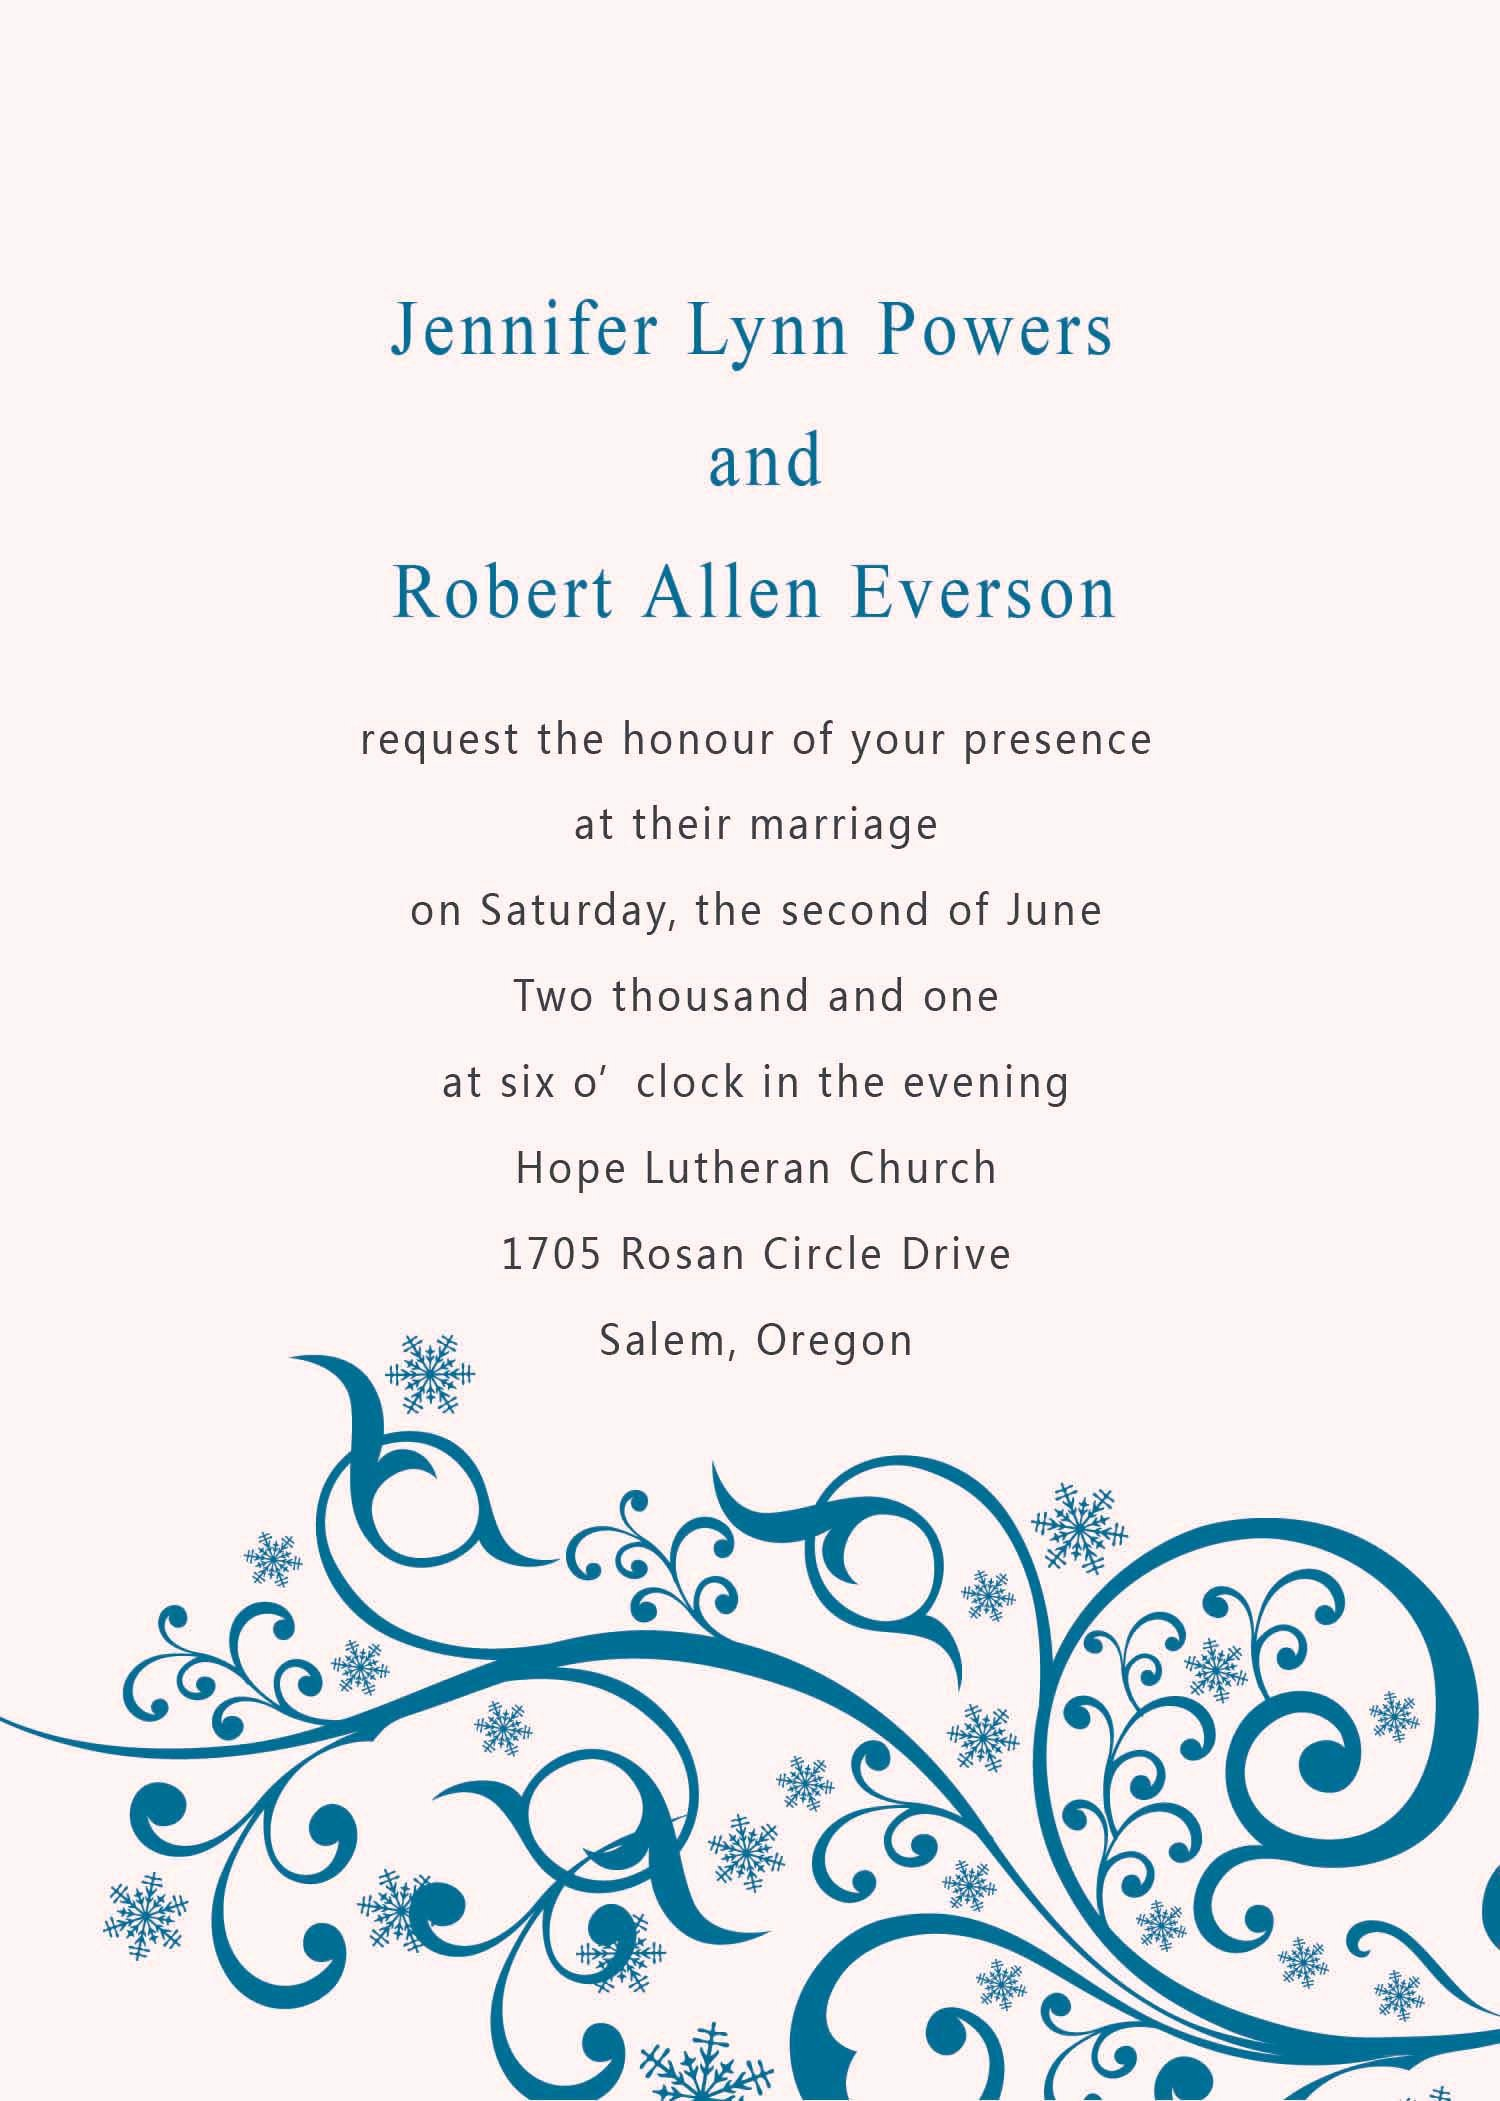 Wedding Invitation Word Template Unique Wedding Invitation Templates Word Wedding Invitation